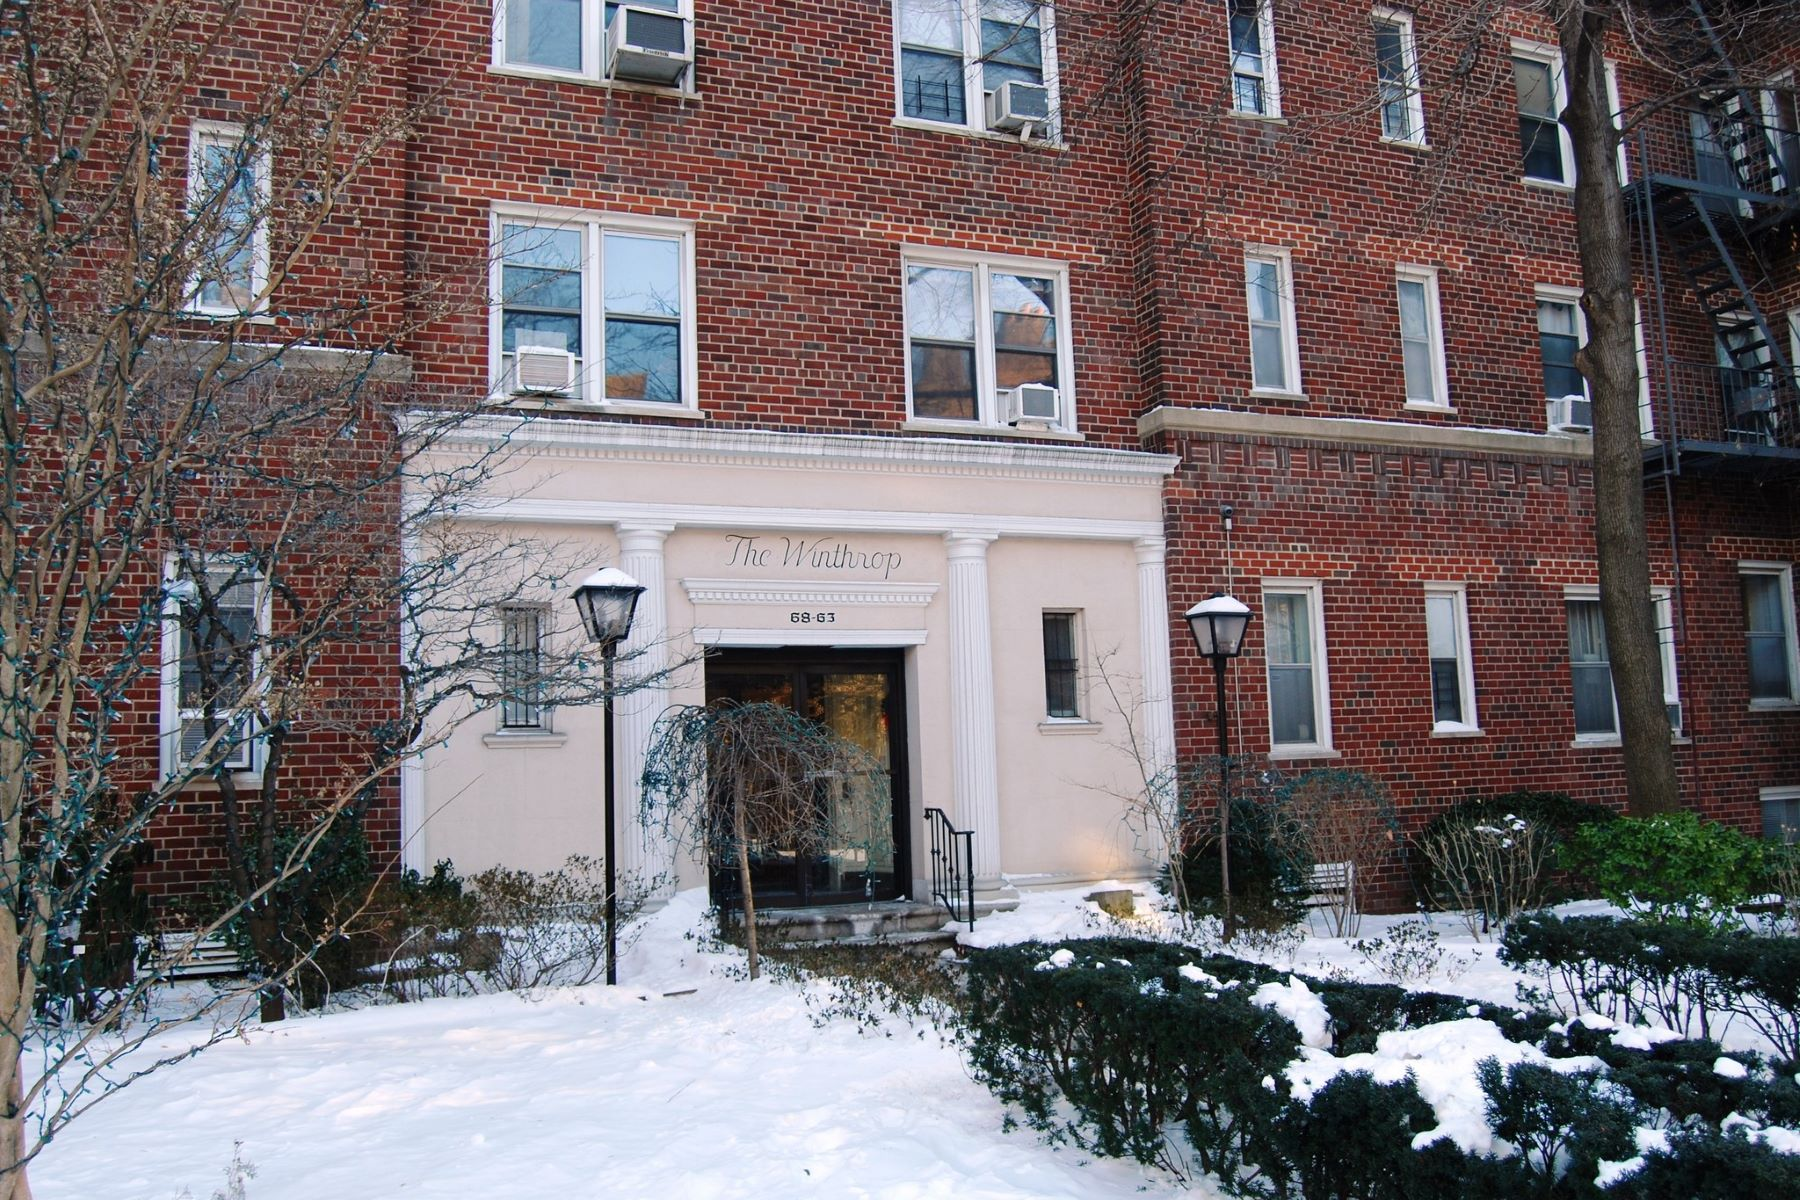 Co-op for Sale at 68-63 108th Street , Forest Hills, NY 11375 68-63 108th Street 6M Forest Hills, 11375 United States